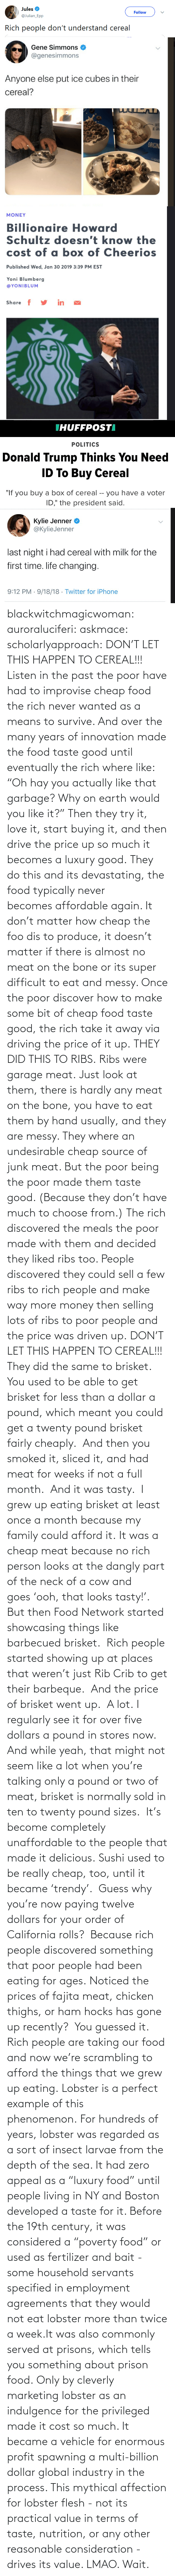 "person: blackwitchmagicwoman: auroraluciferi:  askmace:  scholarlyapproach:  DON'T LET THIS HAPPEN TO CEREAL!!! Listen in the past the poor have had to improvise cheap food the rich never wanted as a means to survive. And over the many years of innovation made the food taste good until eventually the rich where like: ""Oh hay you actually like that garbage? Why on earth would you like it?"" Then they try it, love it, start buying it, and then drive the price up so much it becomes a luxury good. They do this and its devastating, the food typically never becomes affordable again. It don't matter how cheap the foo dis to produce, it doesn't matter if there is almost no meat on the bone or its super difficult to eat and messy. Once the poor discover how to make some bit of cheap food taste good, the rich take it away via driving the price of it up. THEY DID THIS TO RIBS. Ribs were garage meat. Just look at them, there is hardly any meat on the bone, you have to eat them by hand usually, and they are messy. They where an undesirable cheap source of junk meat. But the poor being the poor made them taste good. (Because they don't have much to choose from.) The rich discovered the meals the poor made with them and decided they liked ribs too. People discovered they could sell a few ribs to rich people and make way more money then selling lots of ribs to poor people and the price was driven up. DON'T LET THIS HAPPEN TO CEREAL!!!  They did the same to brisket.  You used to be able to get brisket for less than a dollar a pound, which meant you could get a twenty pound brisket fairly cheaply.  And then you smoked it, sliced it, and had meat for weeks if not a full month.  And it was tasty.  I grew up eating brisket at least once a month because my family could afford it. It was a cheap meat because no rich person looks at the dangly part of the neck of a cow and goes 'ooh, that looks tasty!'. But then Food Network started showcasing things like barbecued brisket.  Rich people started showing up at places that weren't just Rib Crib to get their barbeque.  And the price of brisket went up.  A lot. I regularly see it for over five dollars a pound in stores now.  And while yeah, that might not seem like a lot when you're talking only a pound or two of meat, brisket is normally sold in ten to twenty pound sizes.  It's become completely unaffordable to the people that made it delicious. Sushi used to be really cheap, too, until it became 'trendy'.  Guess why you're now paying twelve dollars for your order of California rolls?  Because rich people discovered something that poor people had been eating for ages. Noticed the prices of fajita meat, chicken thighs, or ham hocks has gone up recently?  You guessed it.  Rich people are taking our food and now we're scrambling to afford the things that we grew up eating.  Lobster is a perfect example of this phenomenon. For hundreds of years, lobster was regarded as a sort of insect larvae from the depth of the sea. It had zero appeal as a ""luxury food"" until people living in NY and Boston developed a taste for it. Before the 19th century, it was considered a ""poverty food"" or used as fertilizer and bait - some household servants specified in employment agreements that they would not eat lobster more than twice a week.It was also commonly served at prisons, which tells you something about prison food. Only by cleverly marketing lobster as an indulgence for the privileged made it cost so much. It became a vehicle for enormous profit spawning a multi-billion dollar global industry in the process. This mythical affection for lobster flesh - not its practical value in terms of taste, nutrition, or any other reasonable consideration - drives its value.     LMAO. Wait."